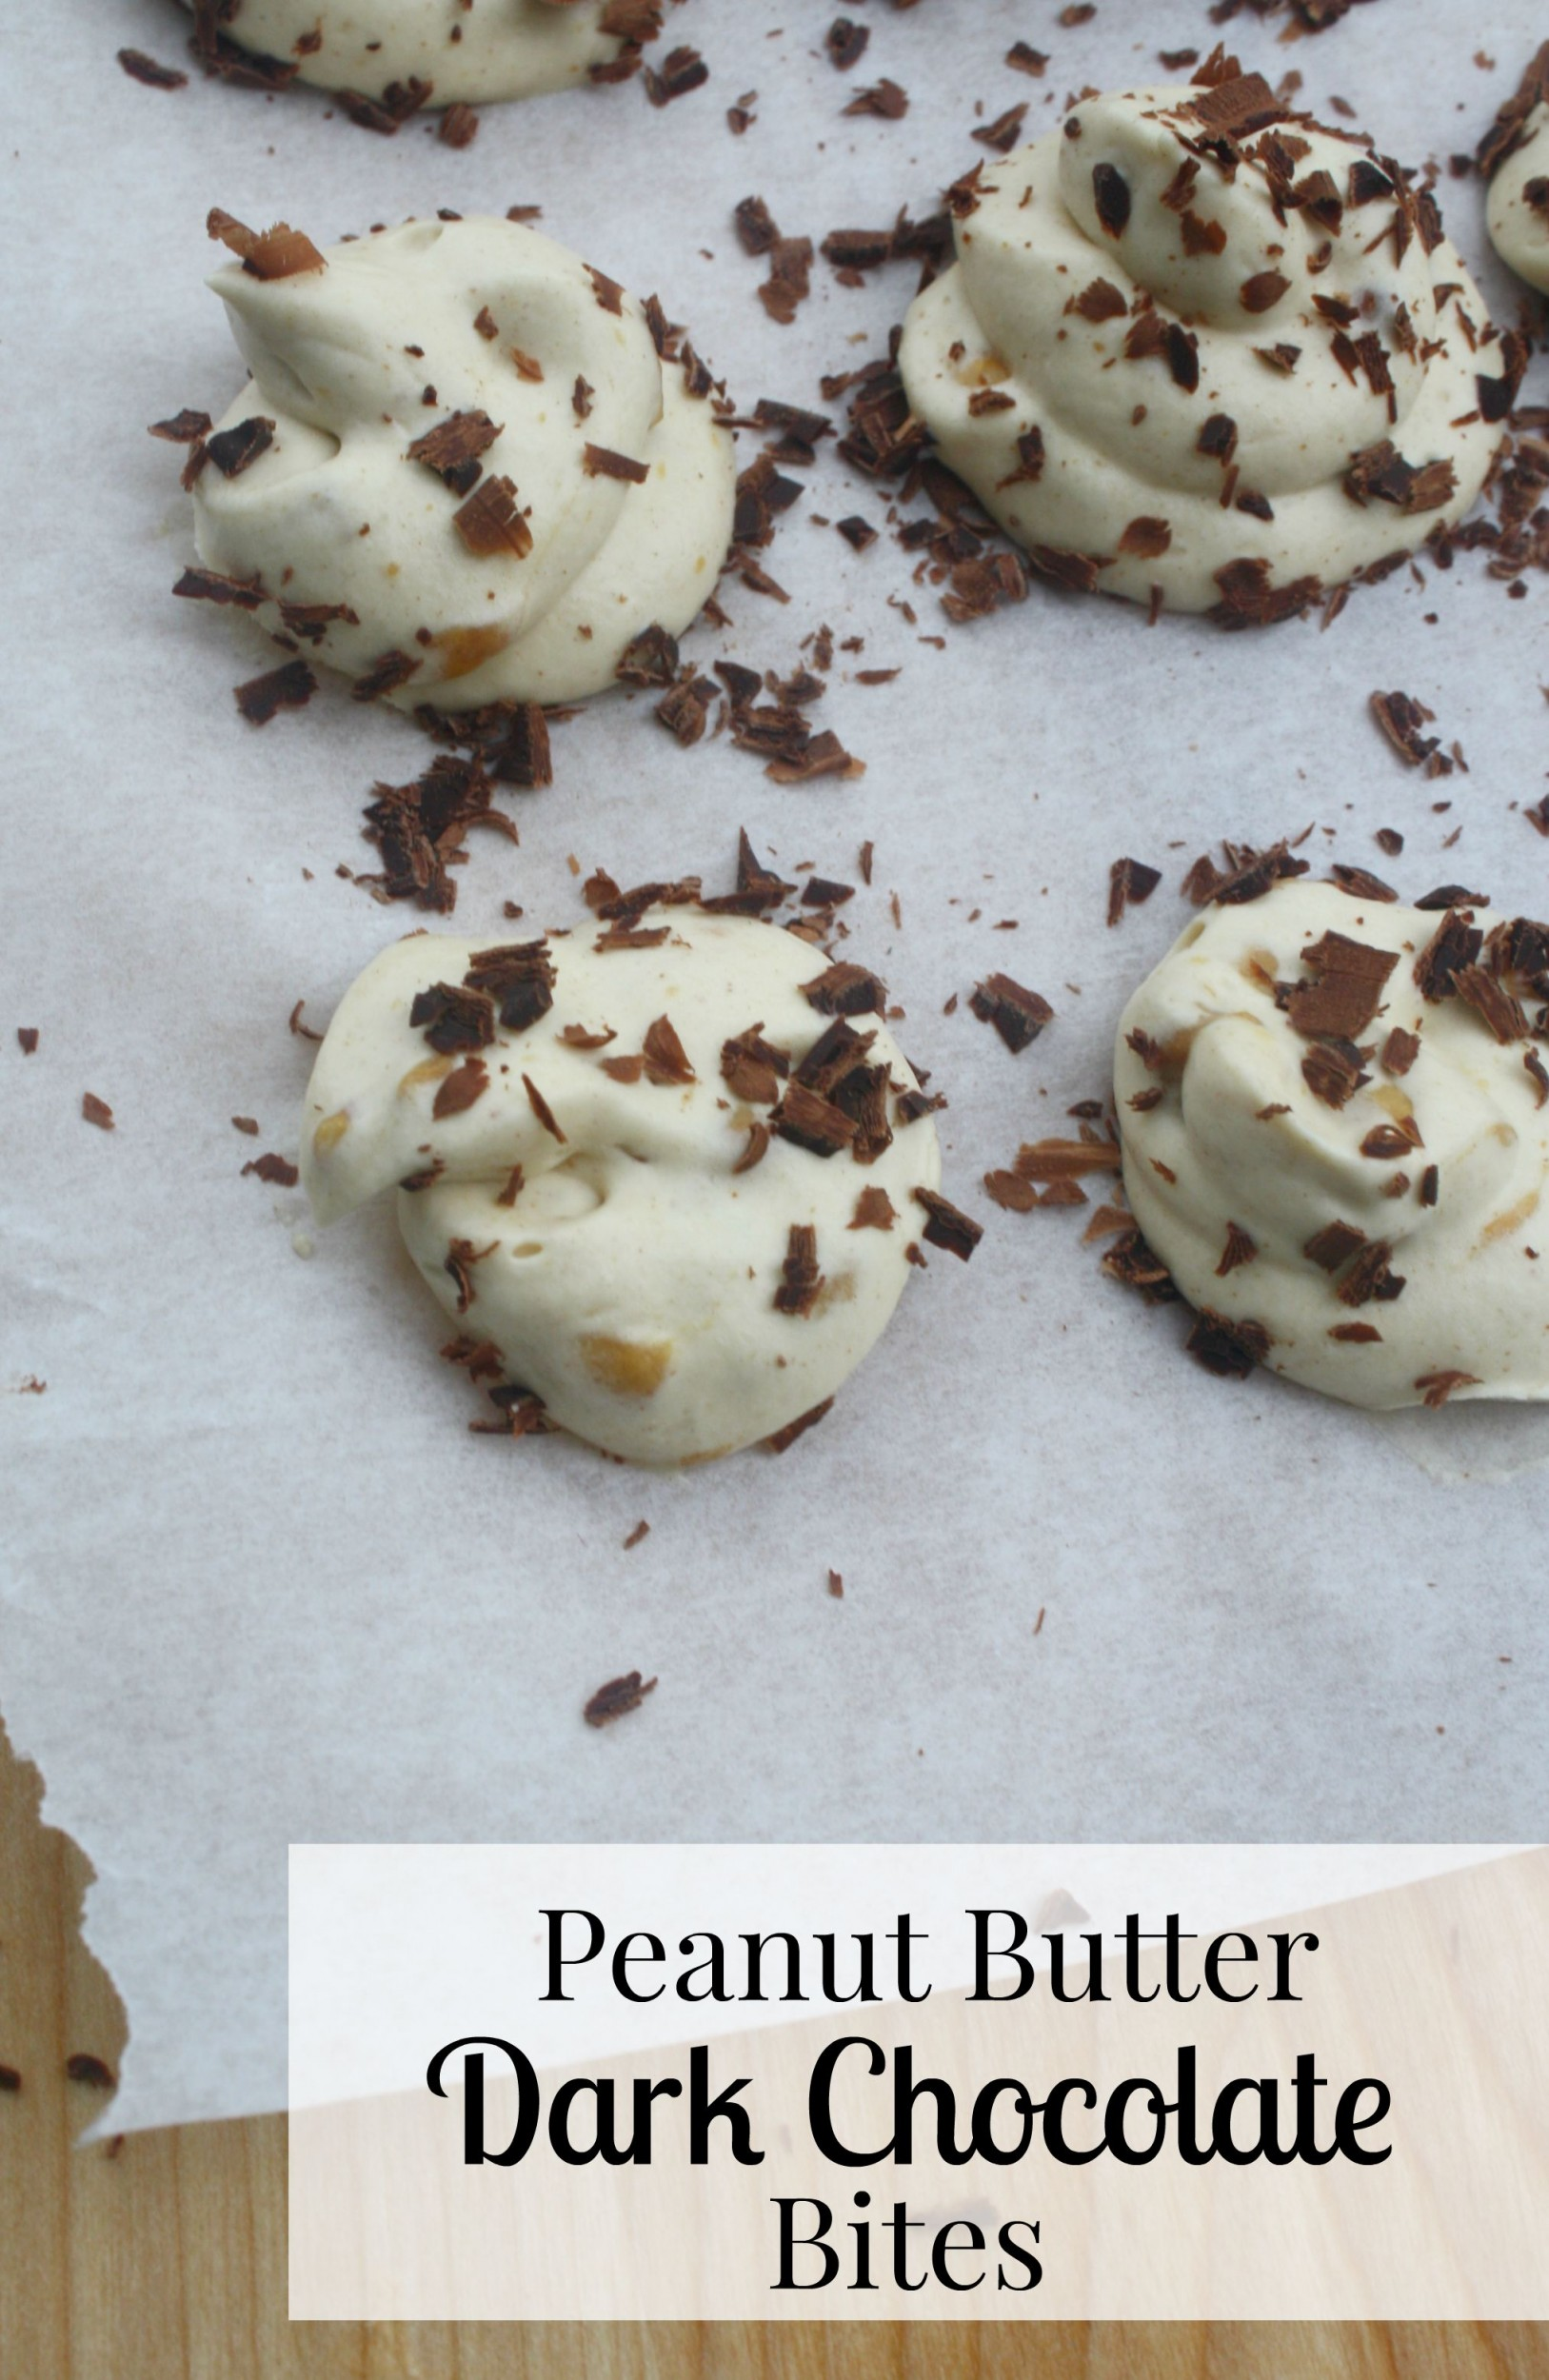 Peanut Butter Dark Chocolate Bites